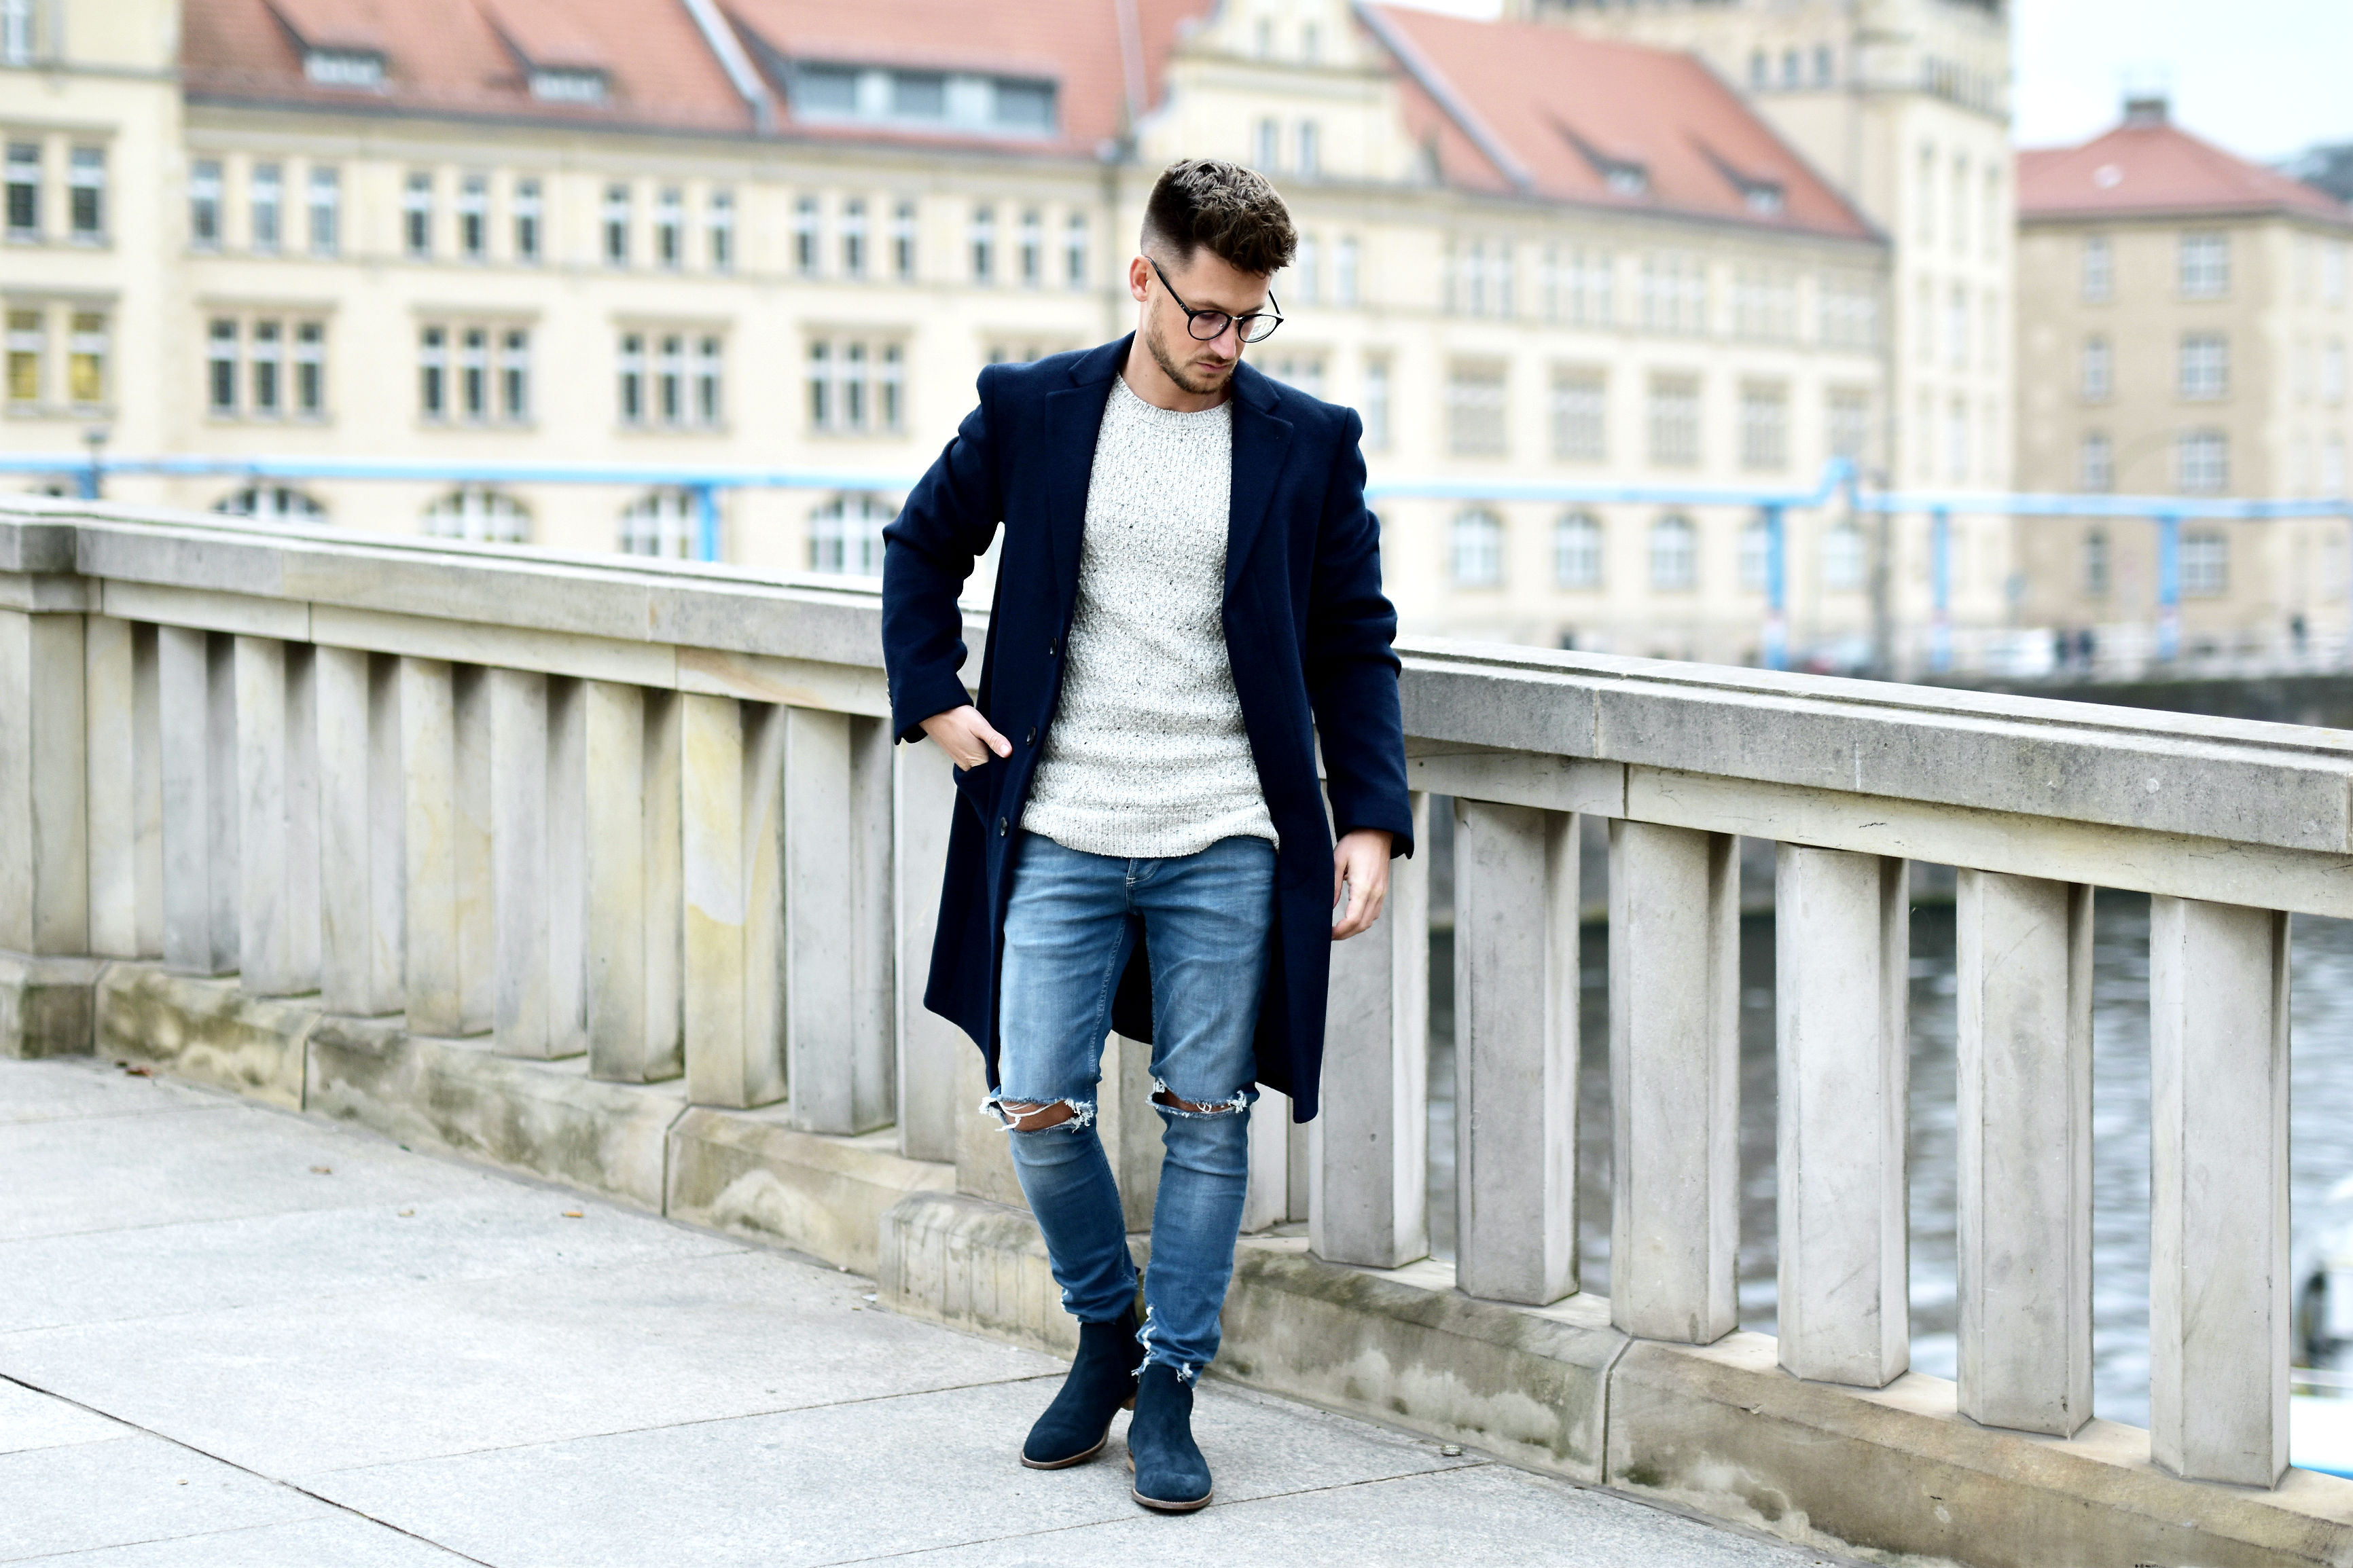 tommeezjerry-styleblog-maennerblog-maenner-modeblog-berlin-berlinblog-maennermodeblog-outfit-mantel-marks-and-spencer-coat-chelsea-boots-autumn-look-9